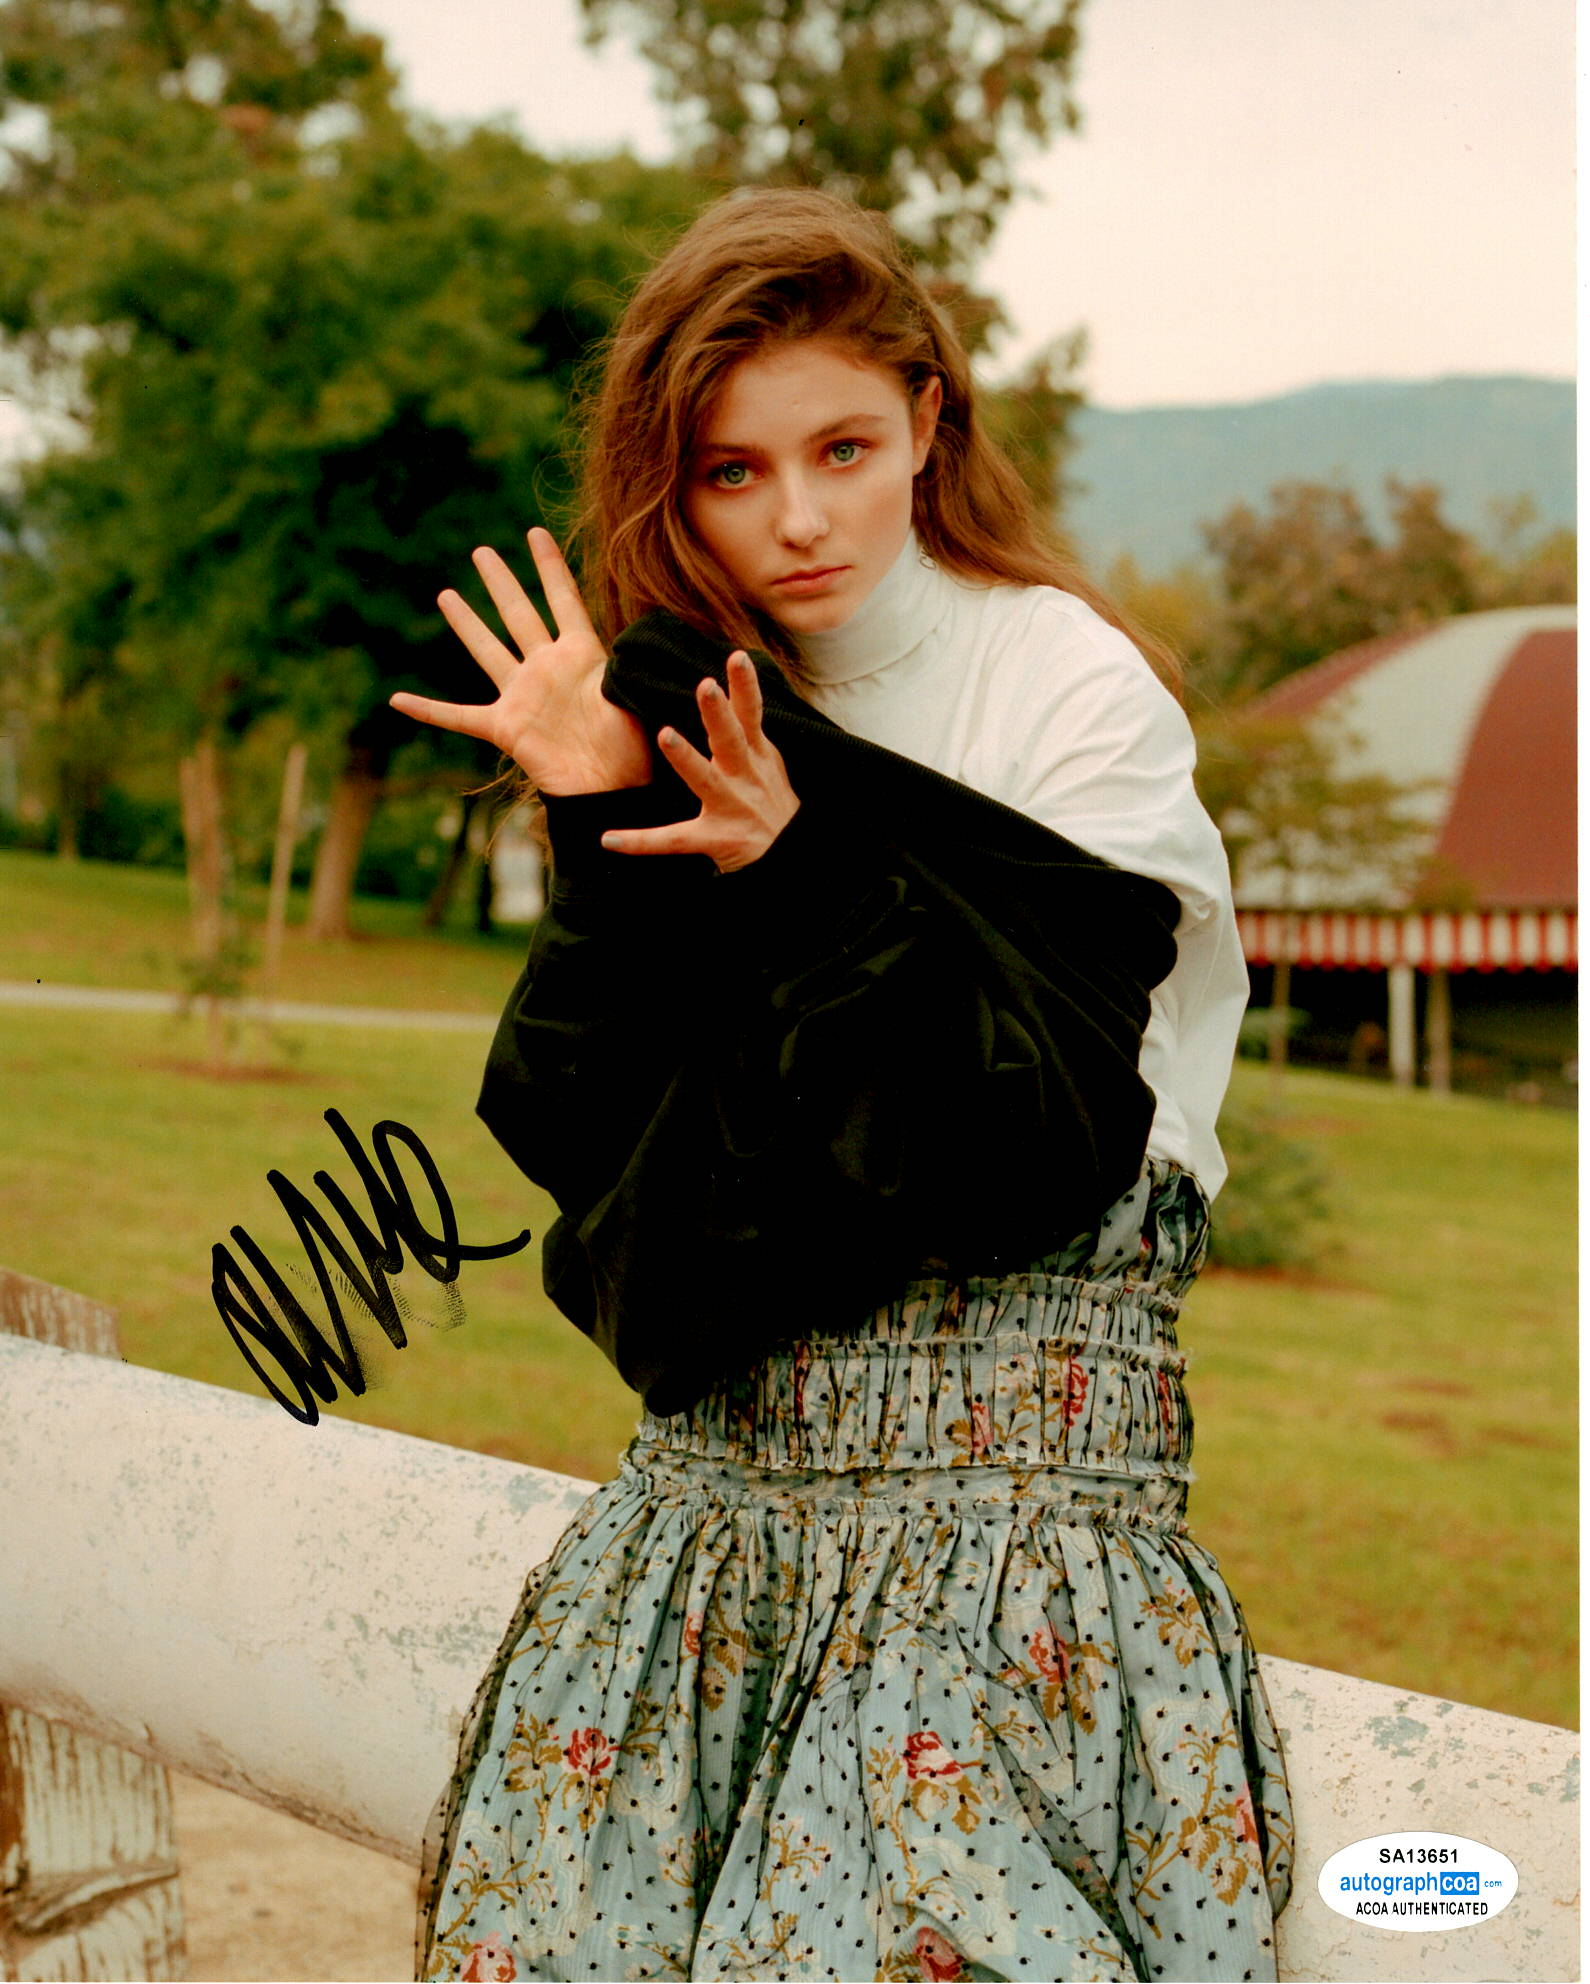 Thomasin McKenzie Signed Autograph 8x10 Photo - Outlaw Hobbies Authentic Autographs